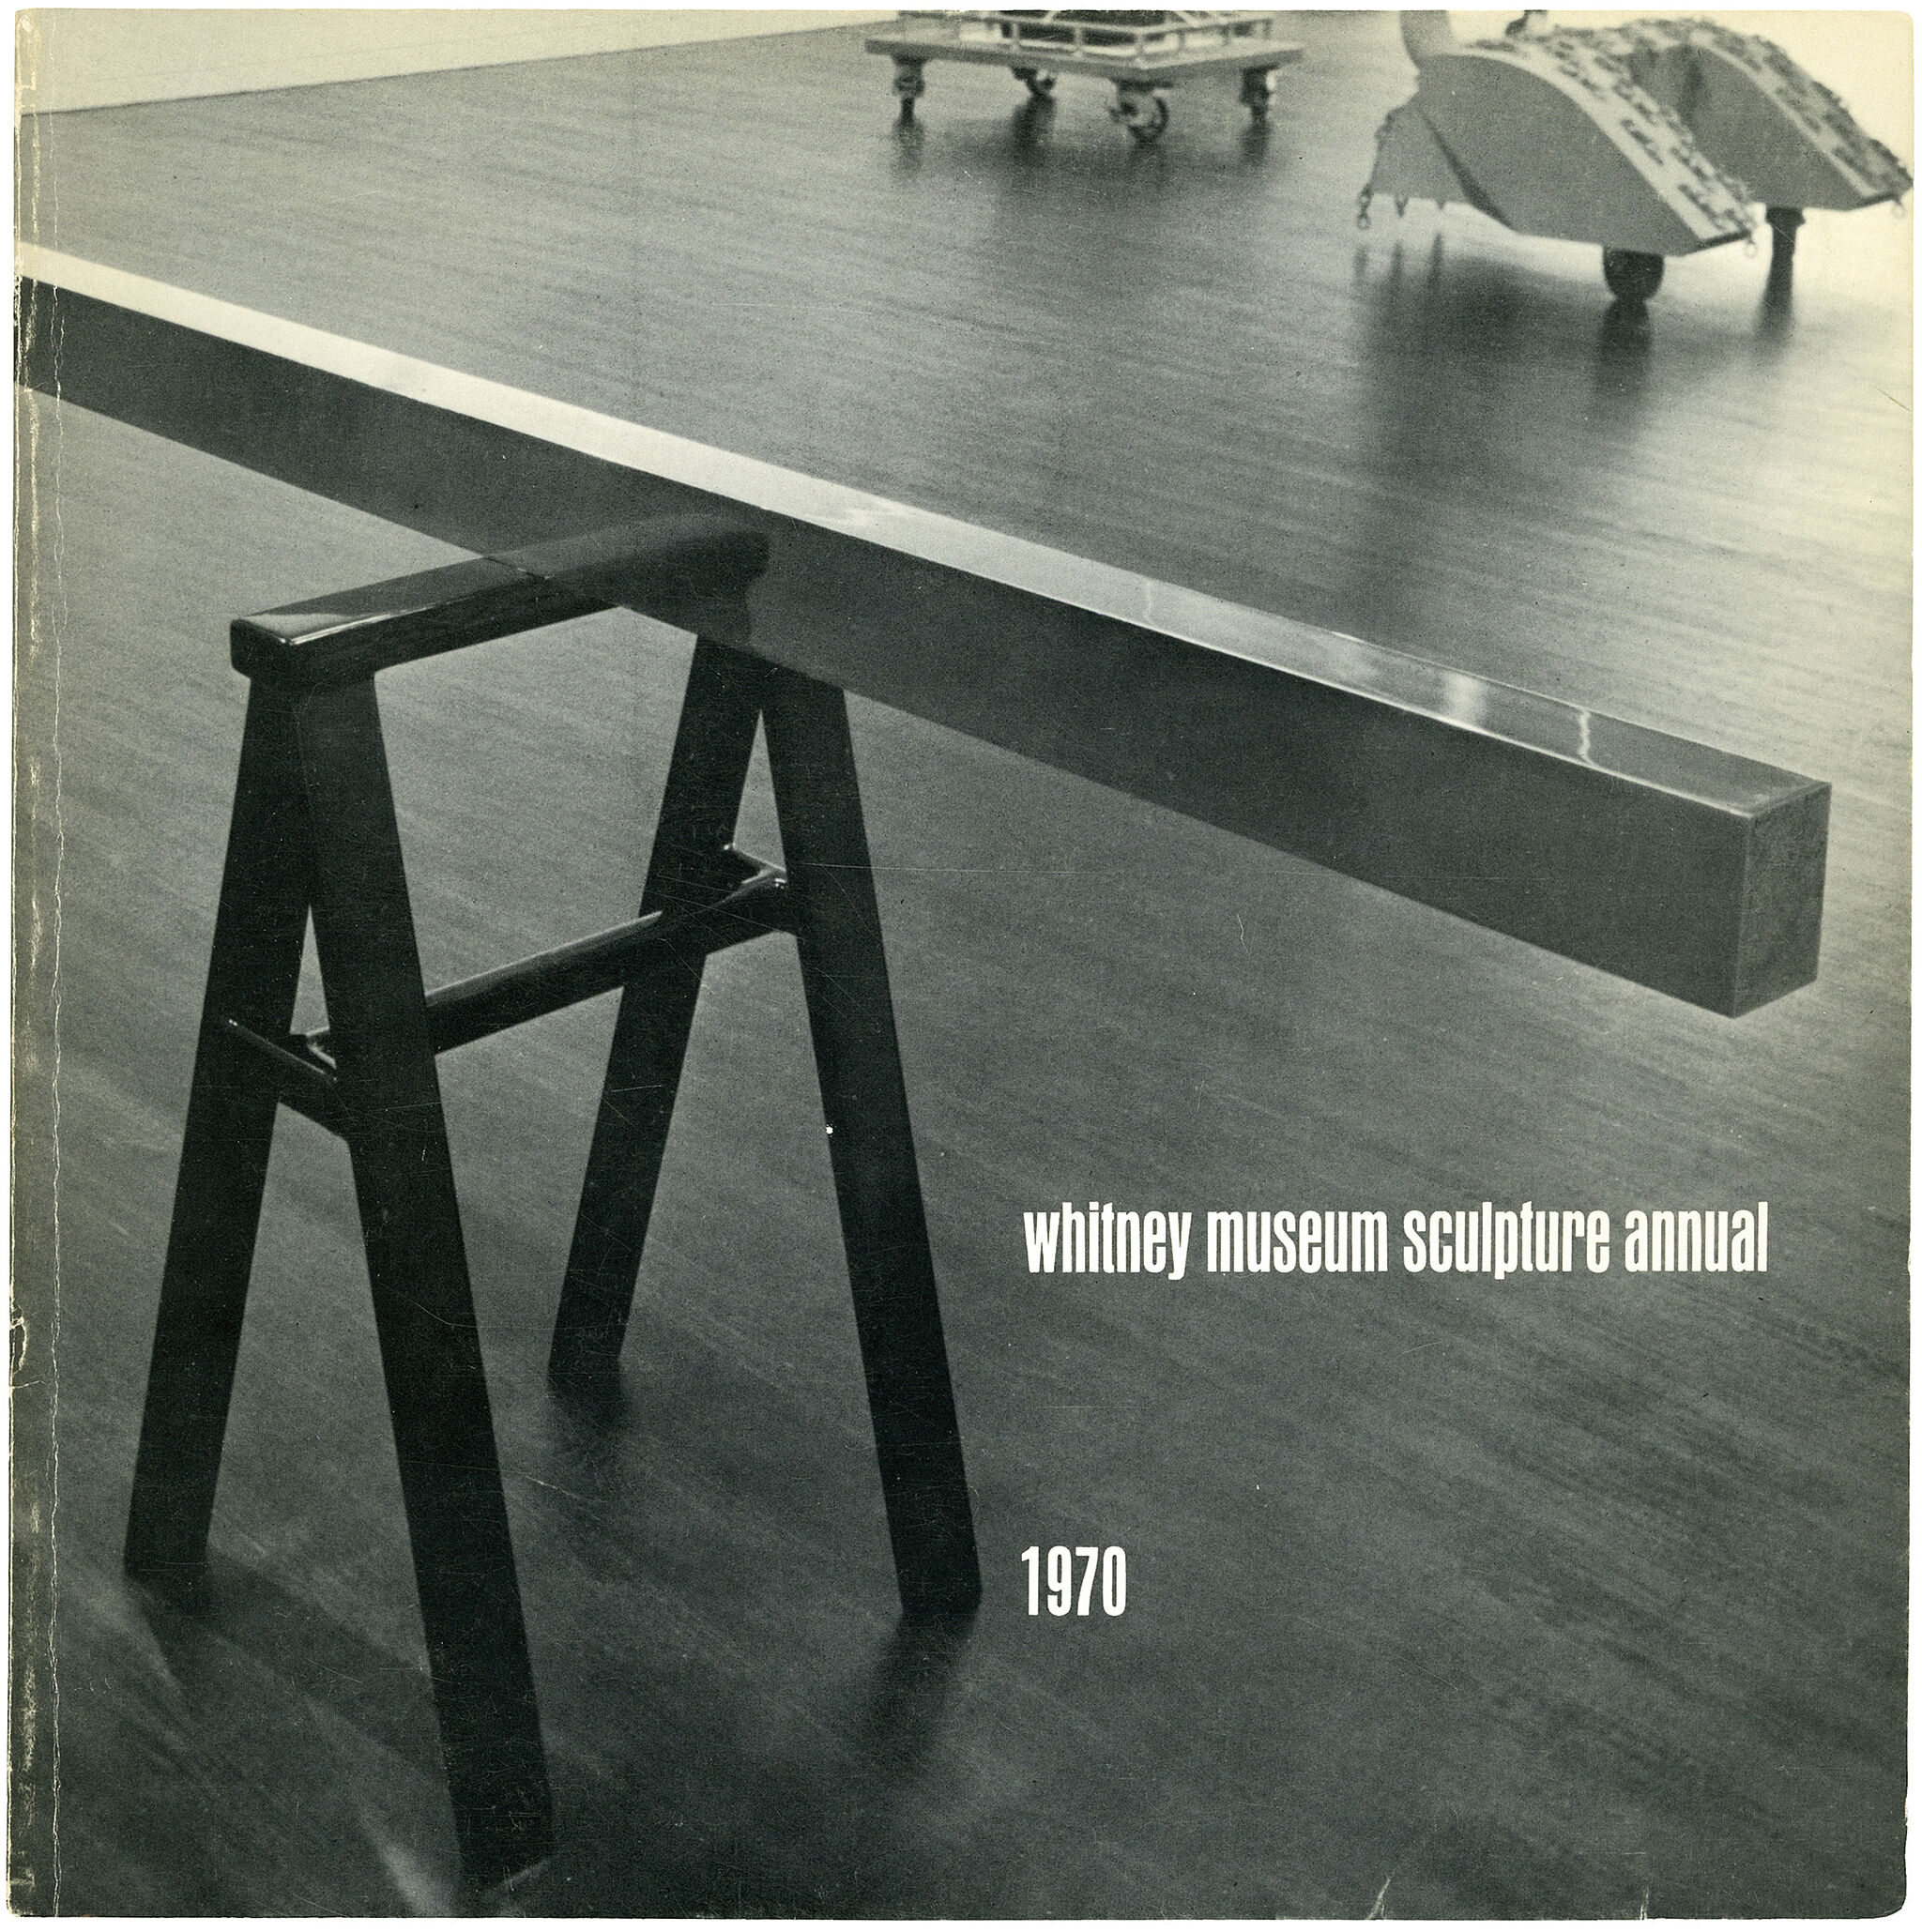 Catalogue cover for 1970 Annual exhibition: Contemporary American Sculpture